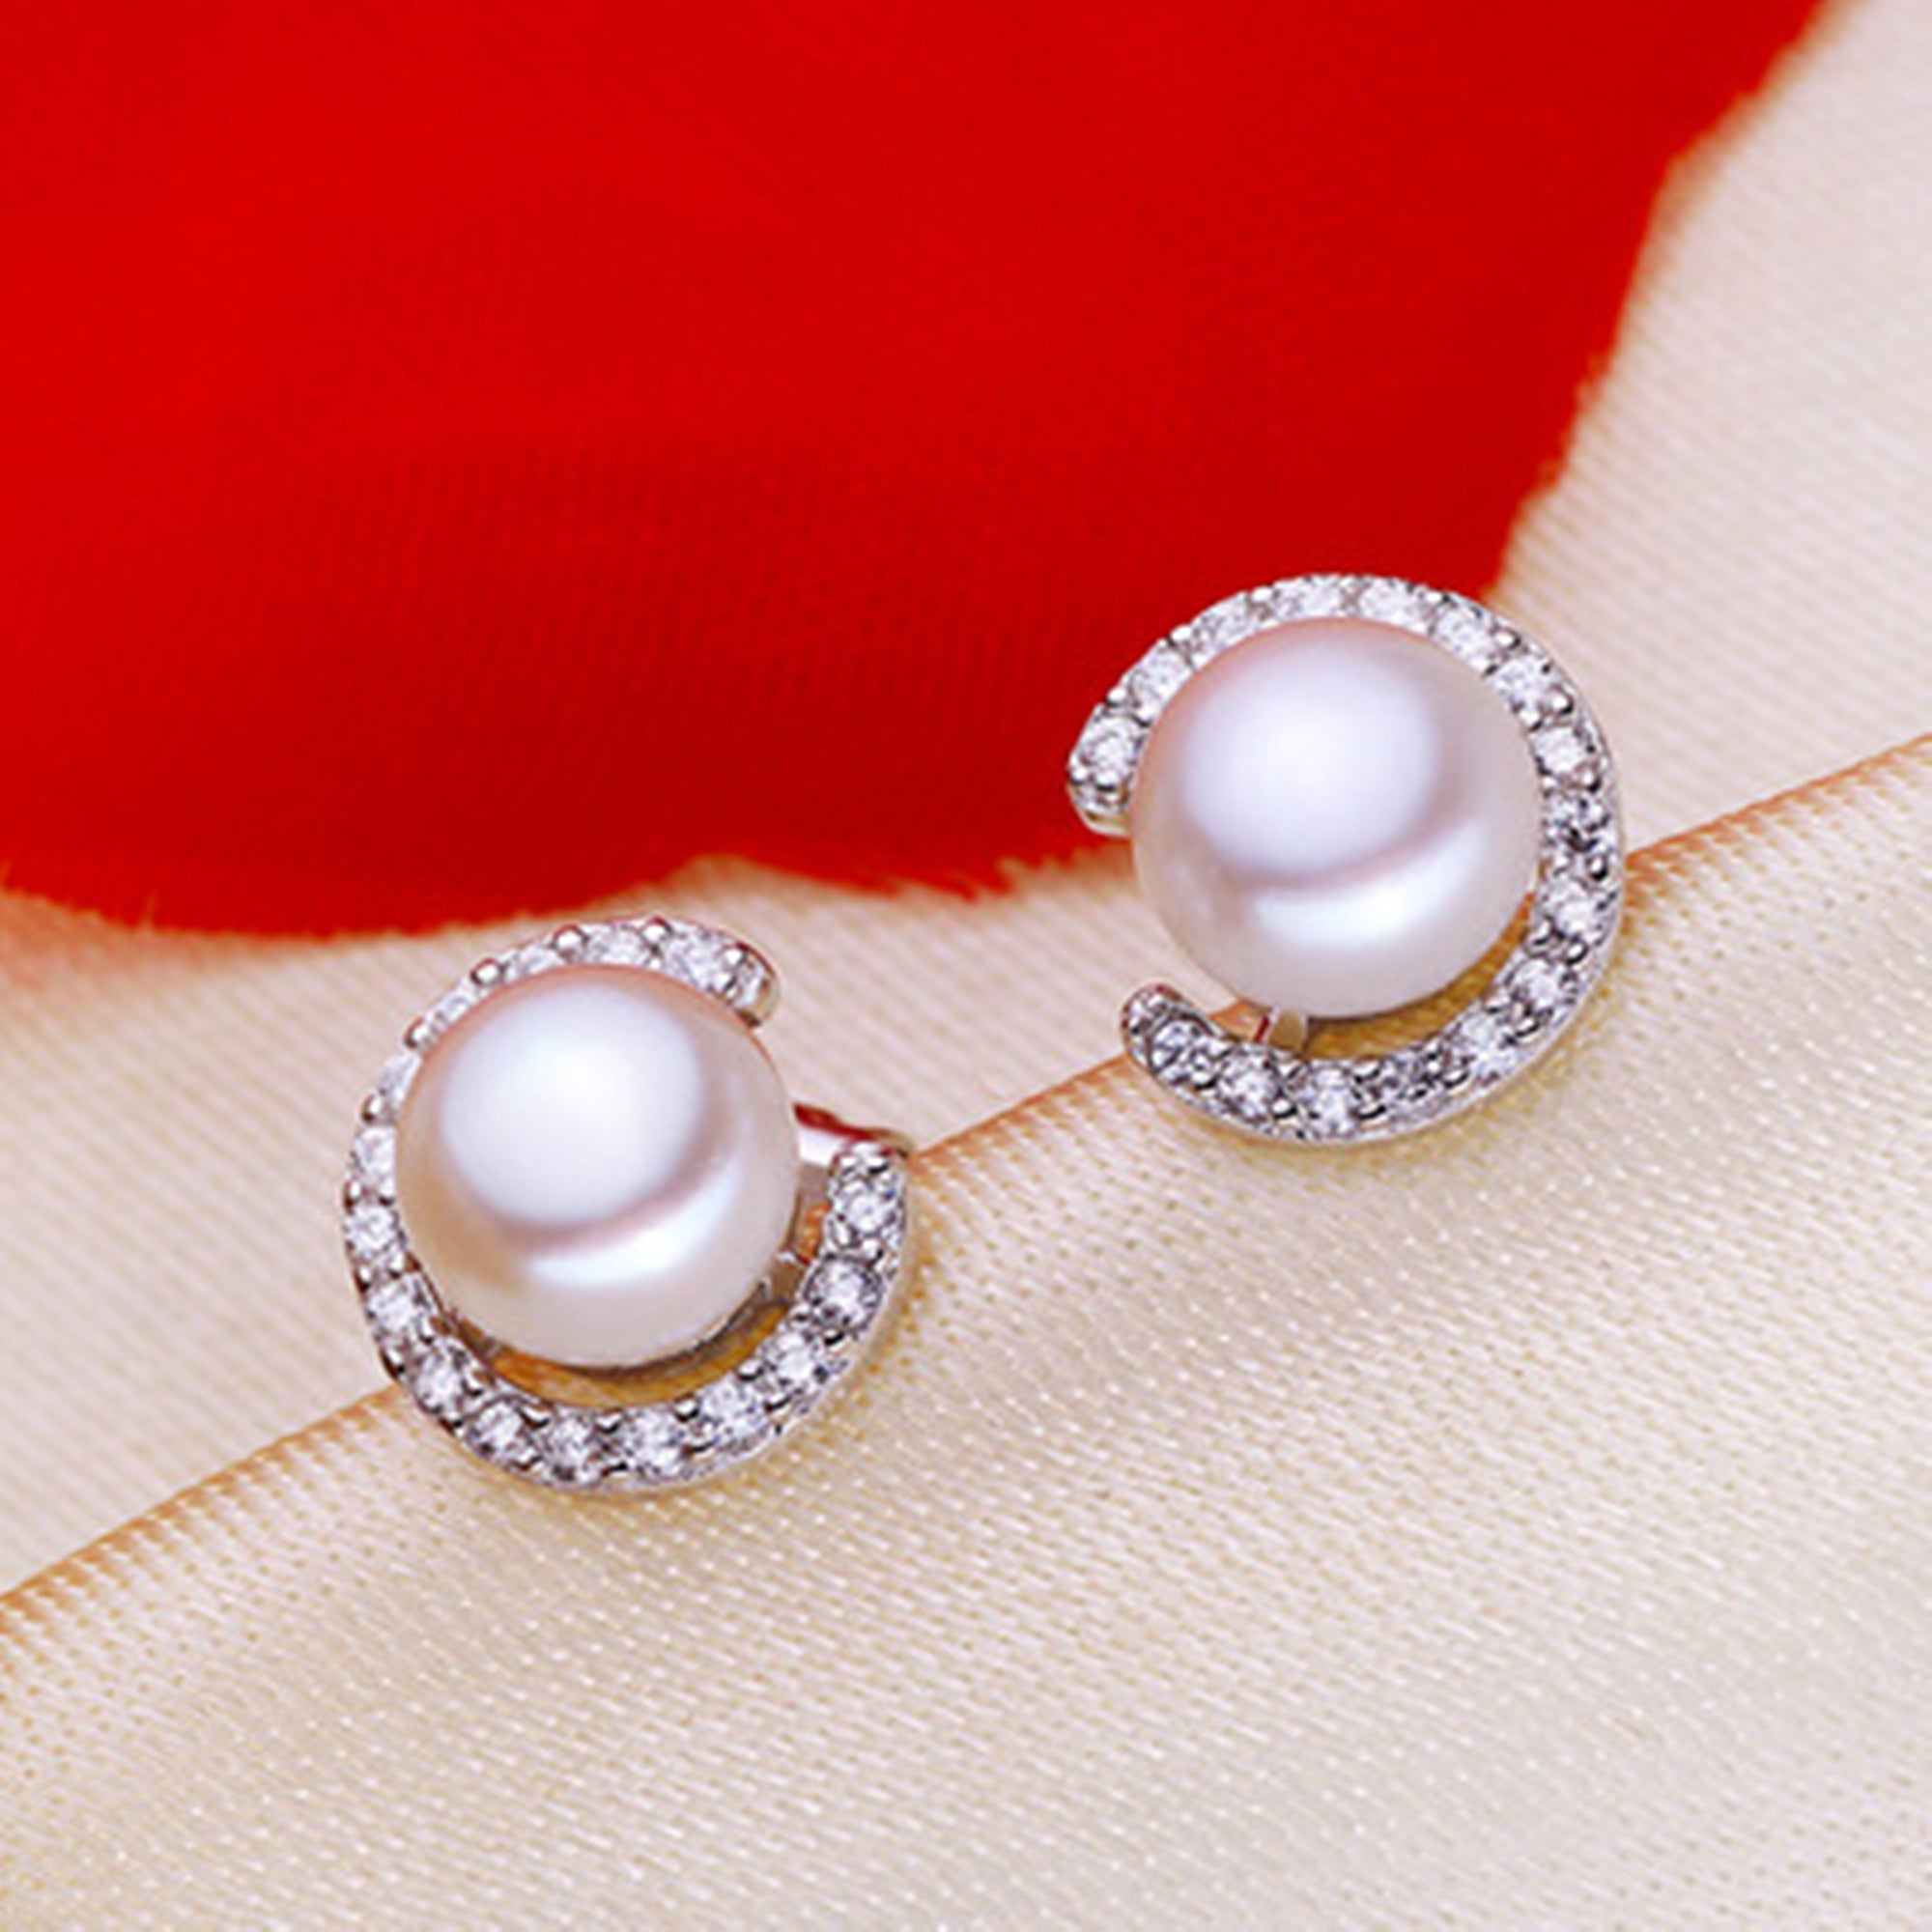 C Letter Natural Pearl Stud Earrings. - Sakura Avenue